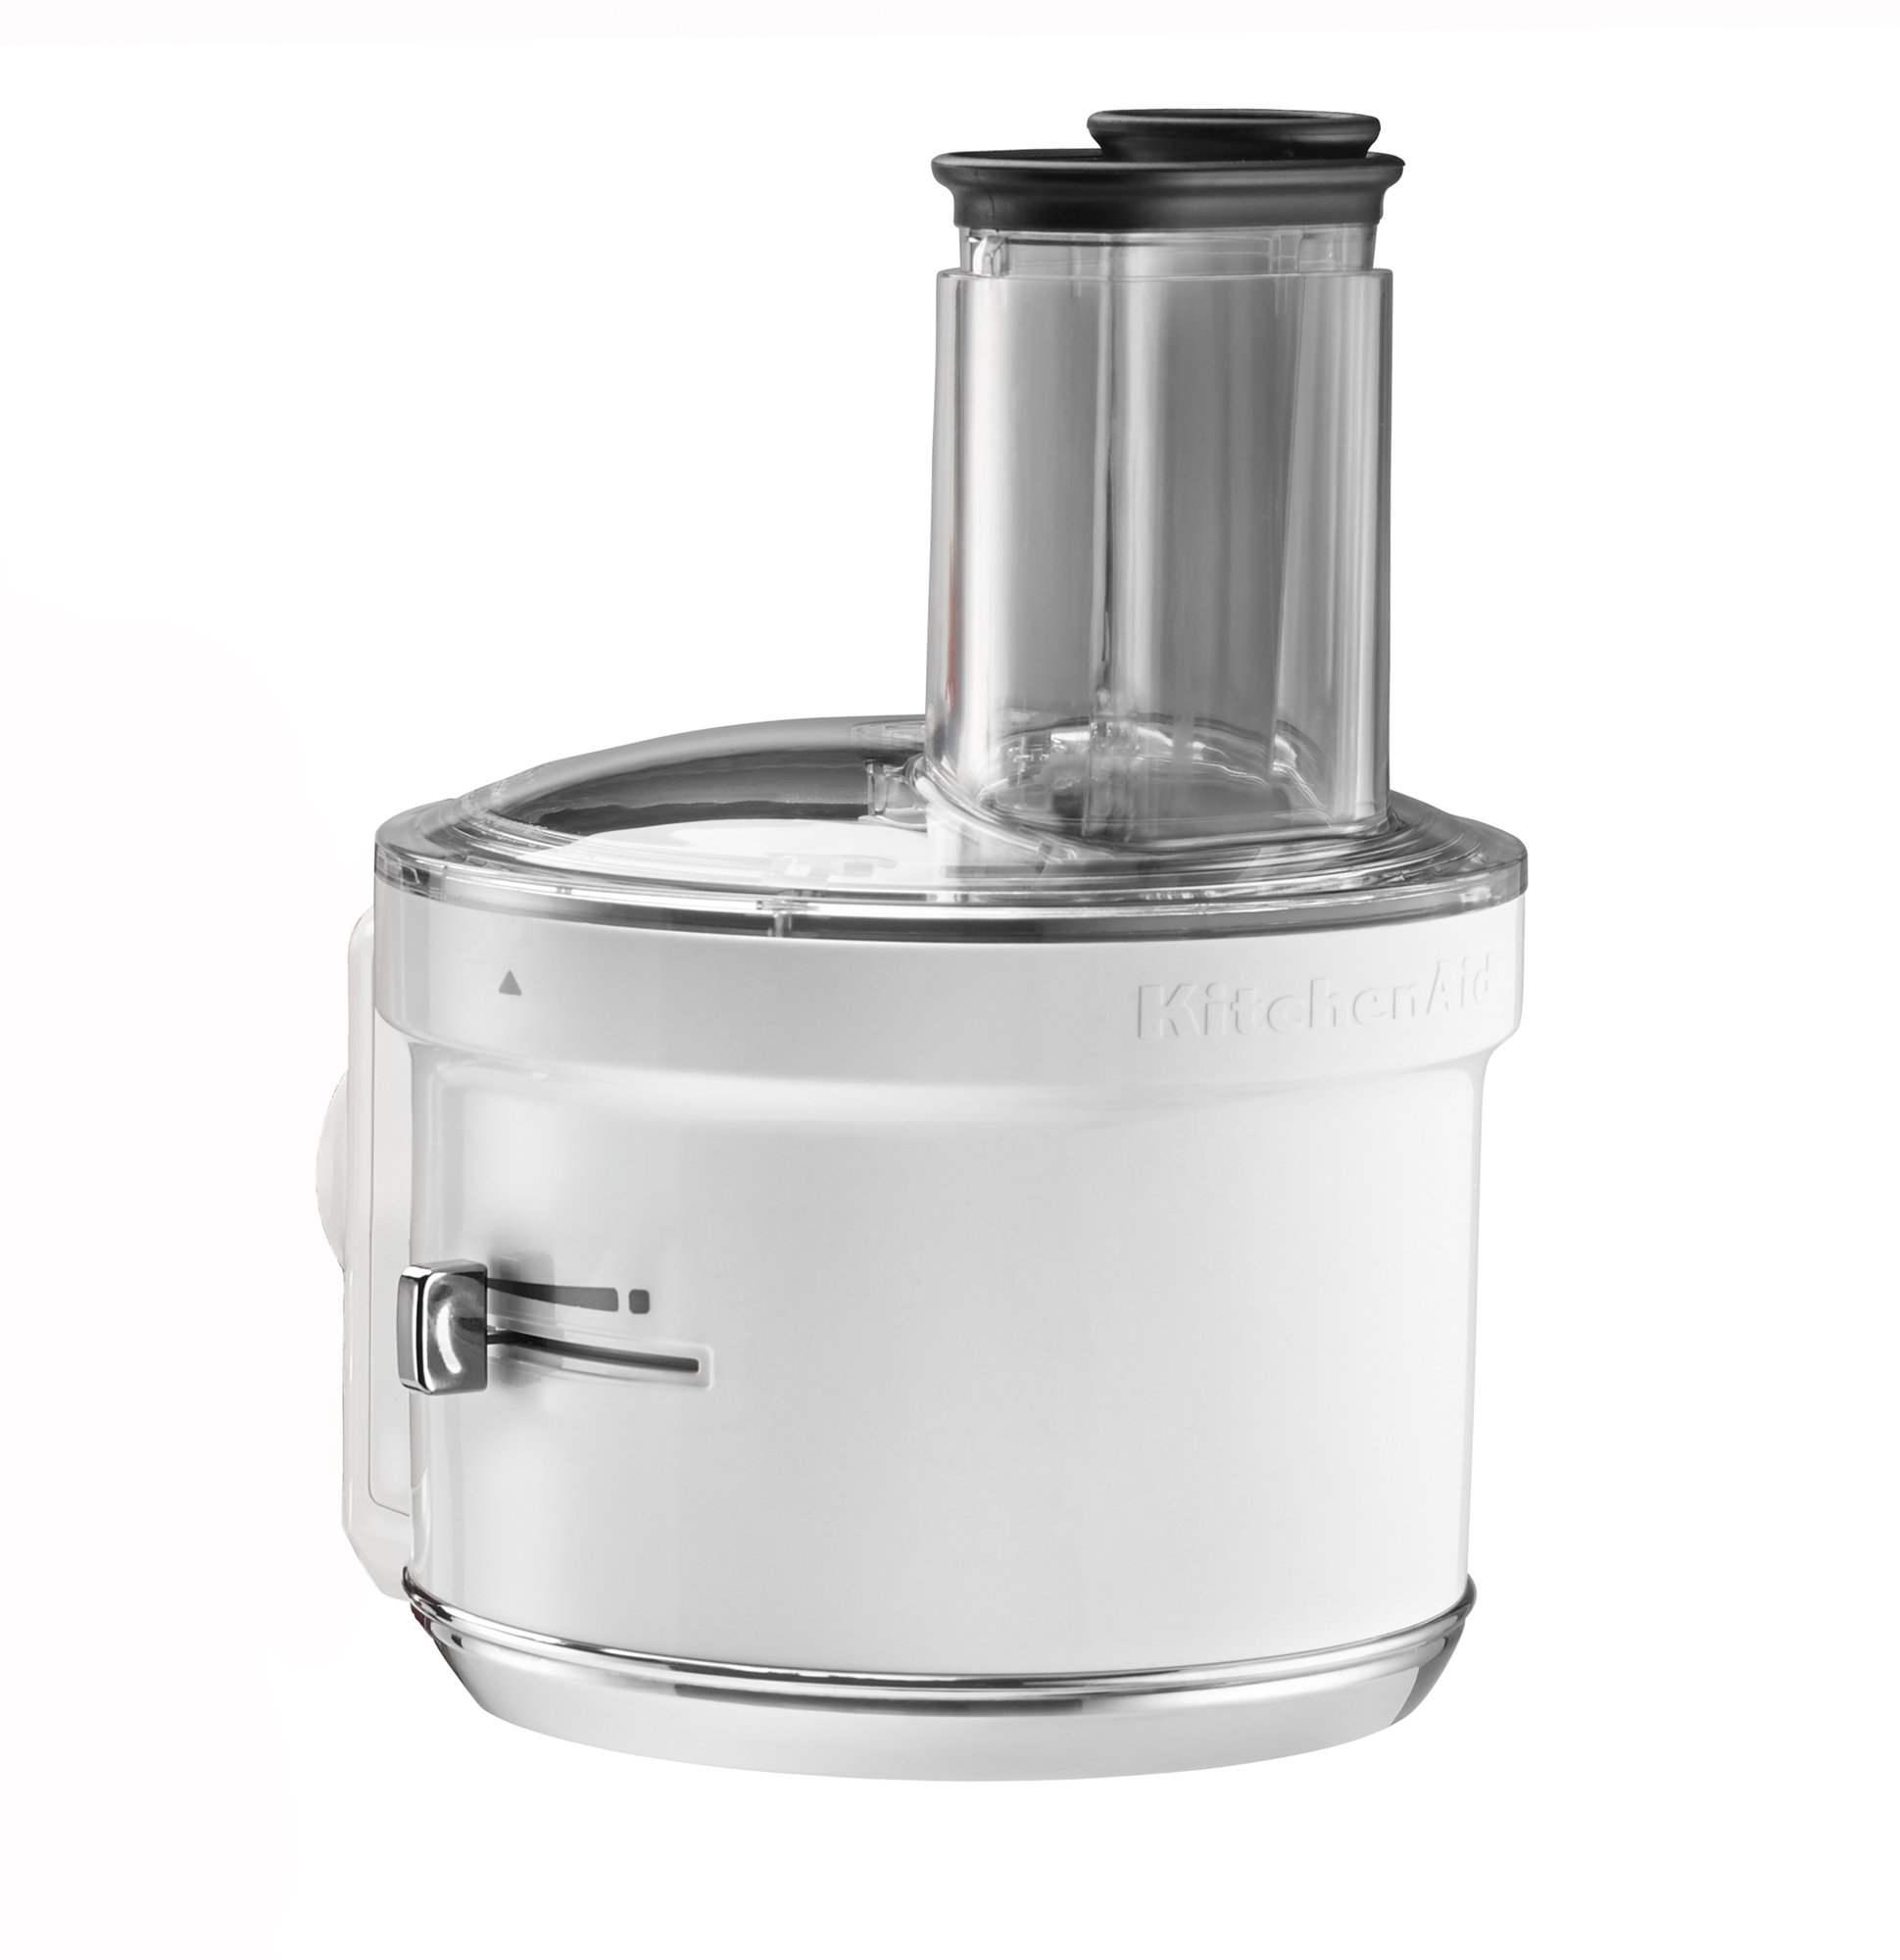 KitchenAid KSM1FPA Food Processor Attachment by KitchenAid (Image #2)